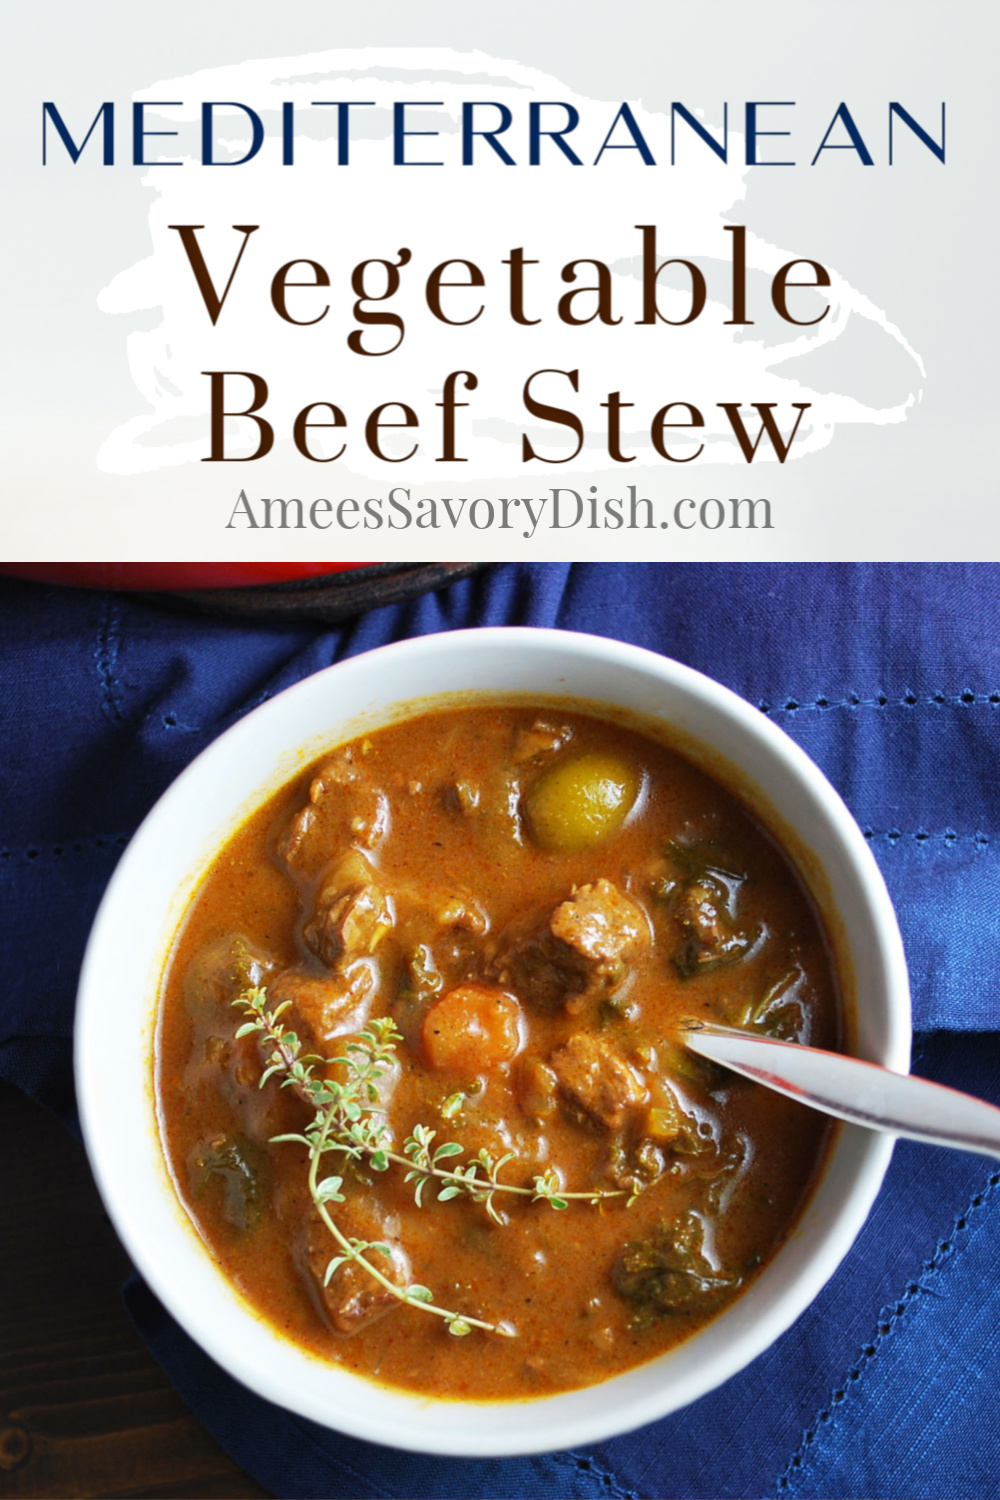 #Sponsored A Mediterranean-inspired recipe for a vegetable beef stew made with lean Beef Bottom Round Roast, beef broth, red wine, vegetables, olives, and fresh herbs.  This low-carb stew recipe is hearty and delicious!  via @Ameecooks